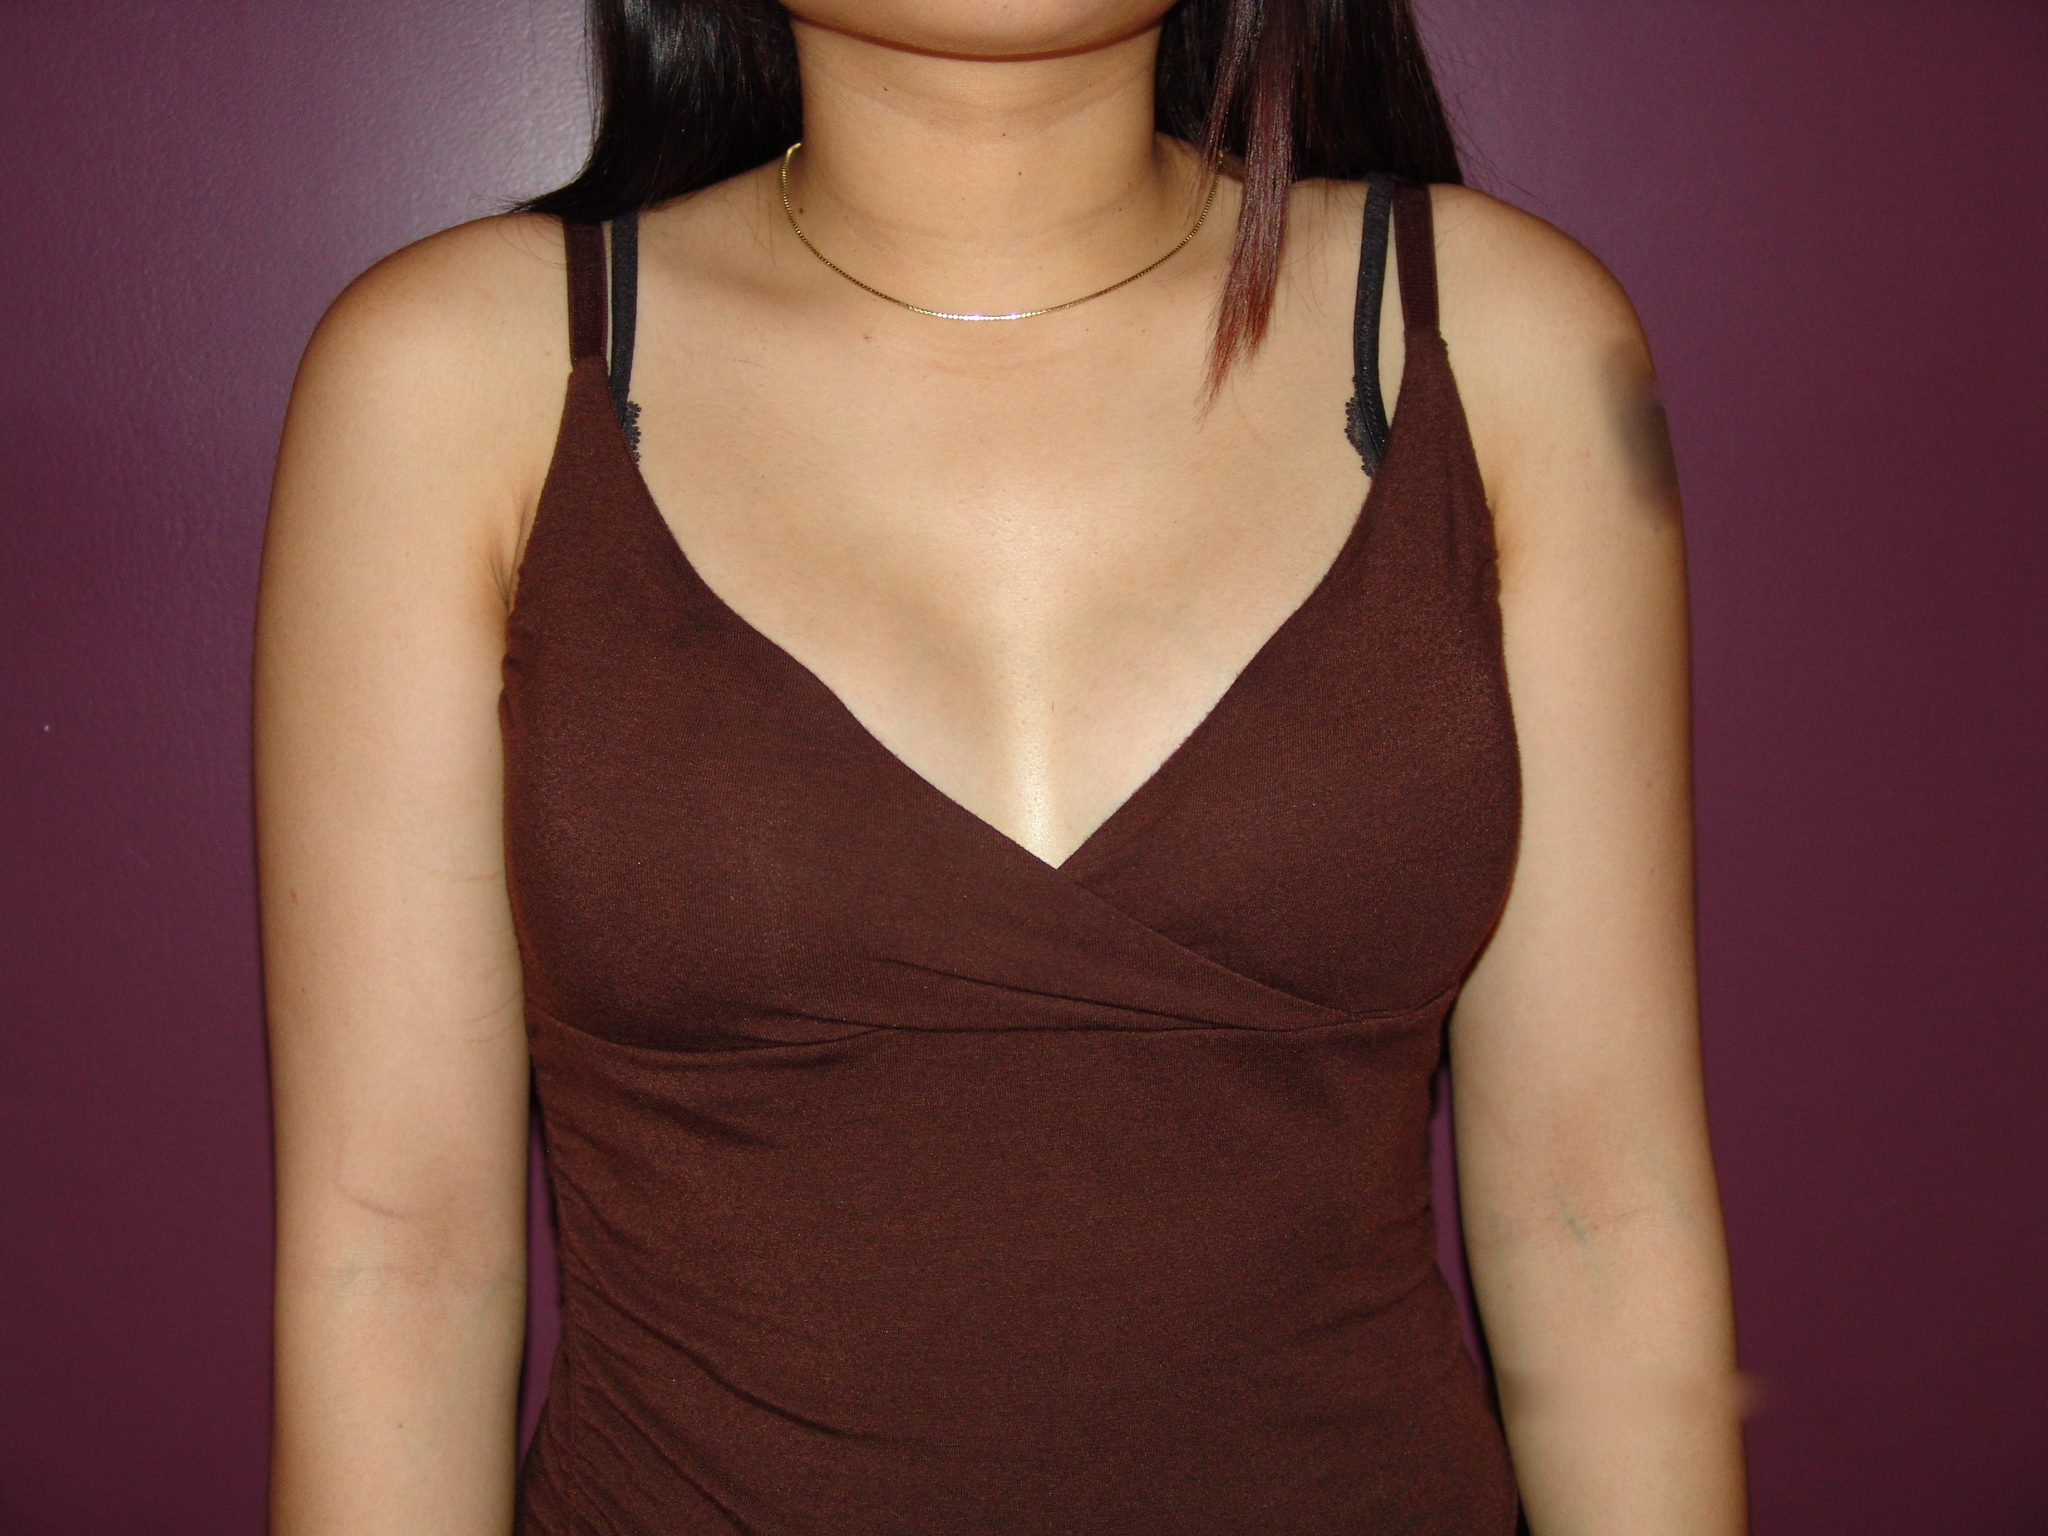 Breast implant illness: Is it real?